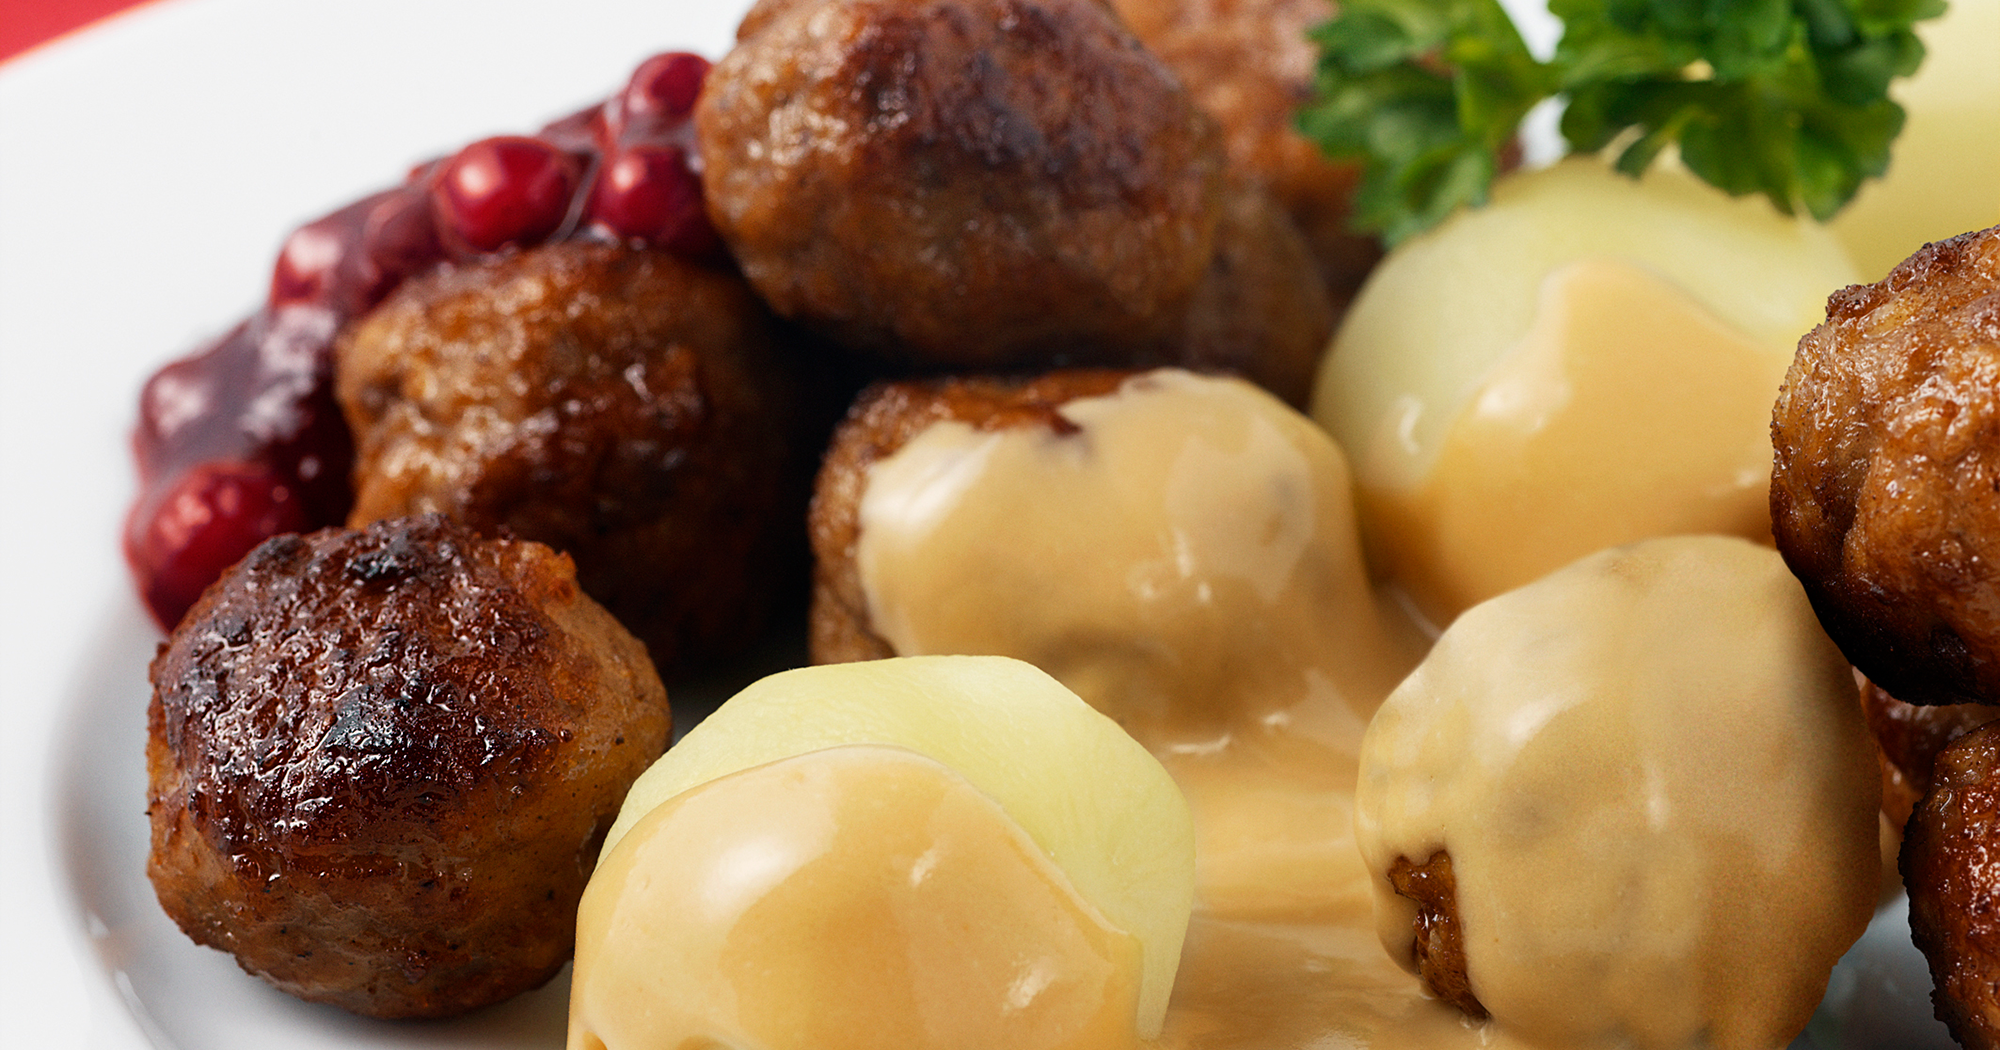 Ikea Is Helping You Celebrate National Meatball Day With These Delicious Deals